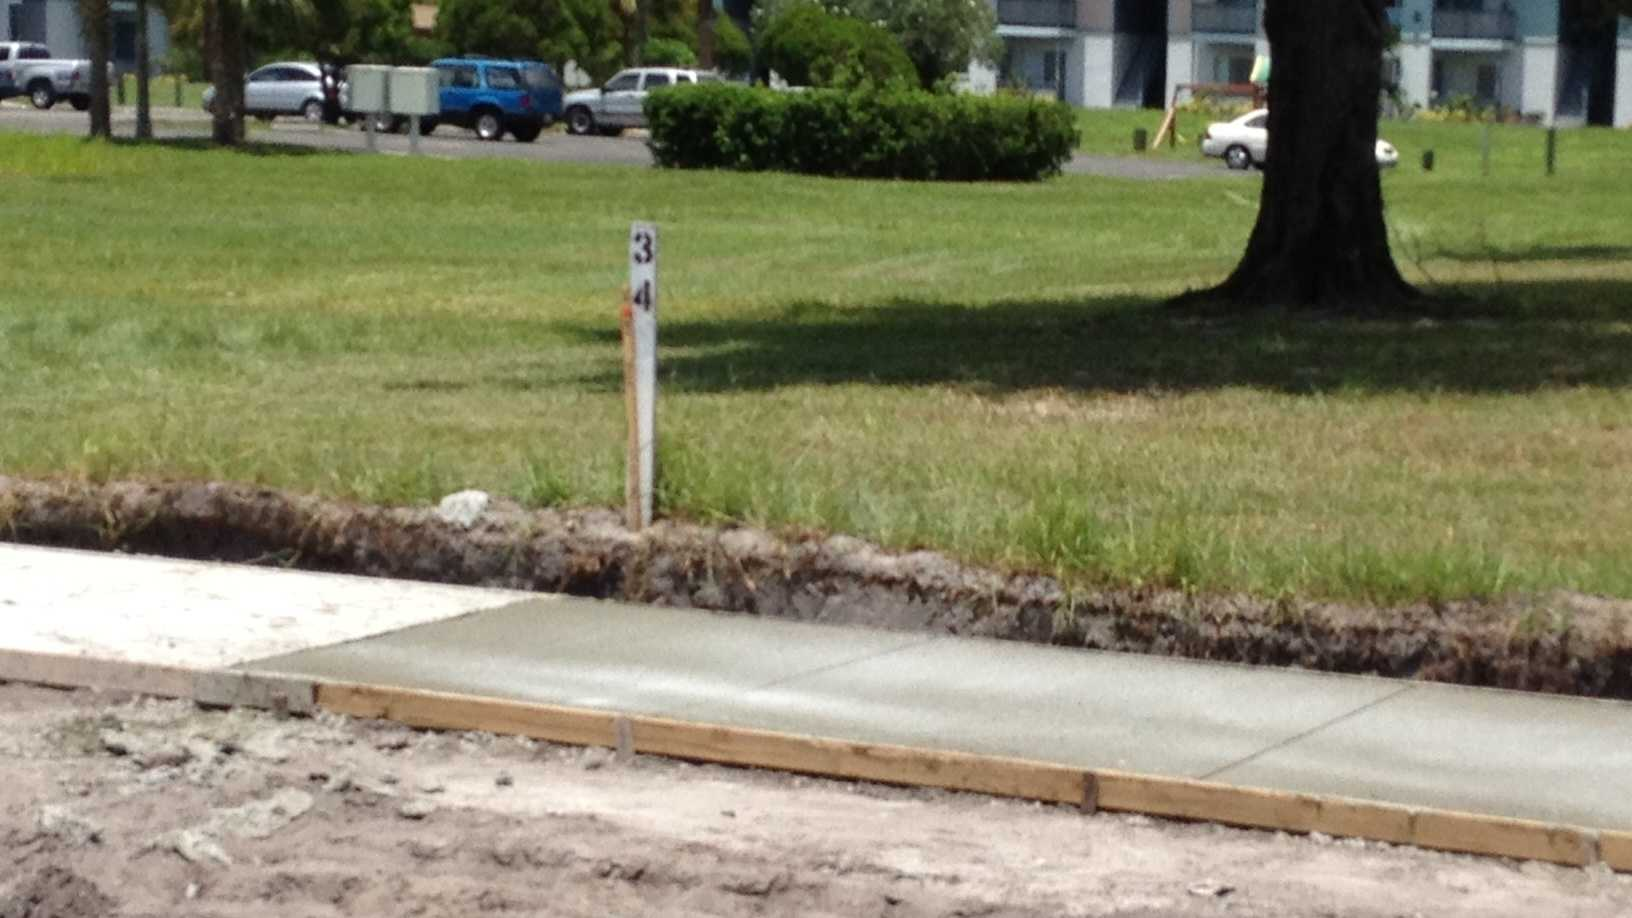 Sidewalks are being installed in a Fort Pierce neighborhood where Christopher Lupin was killed in 2005.